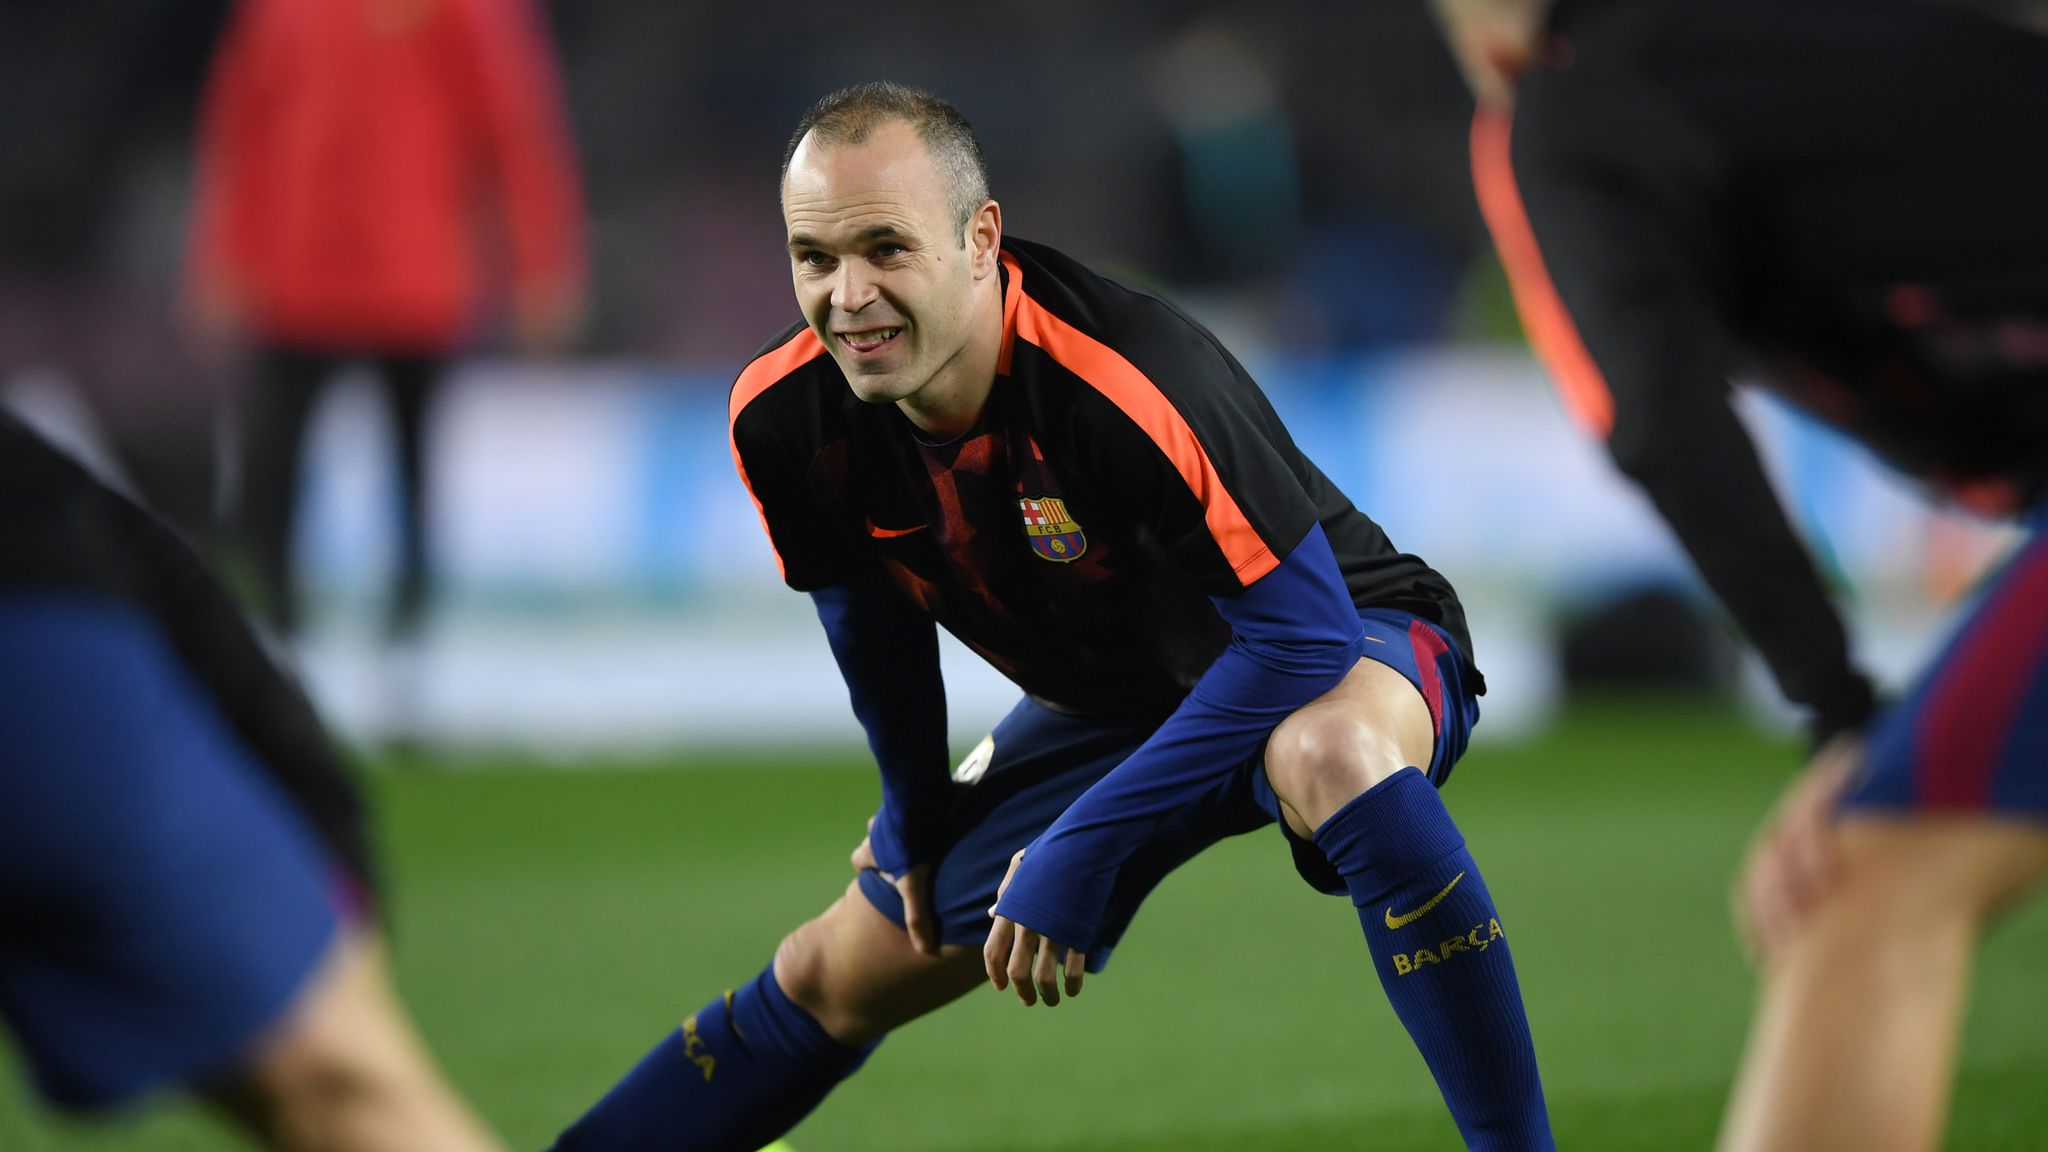 0d3dba1e35d Andres Iniesta to leave Barcelona after 22 years | Football News | Sky  Sports